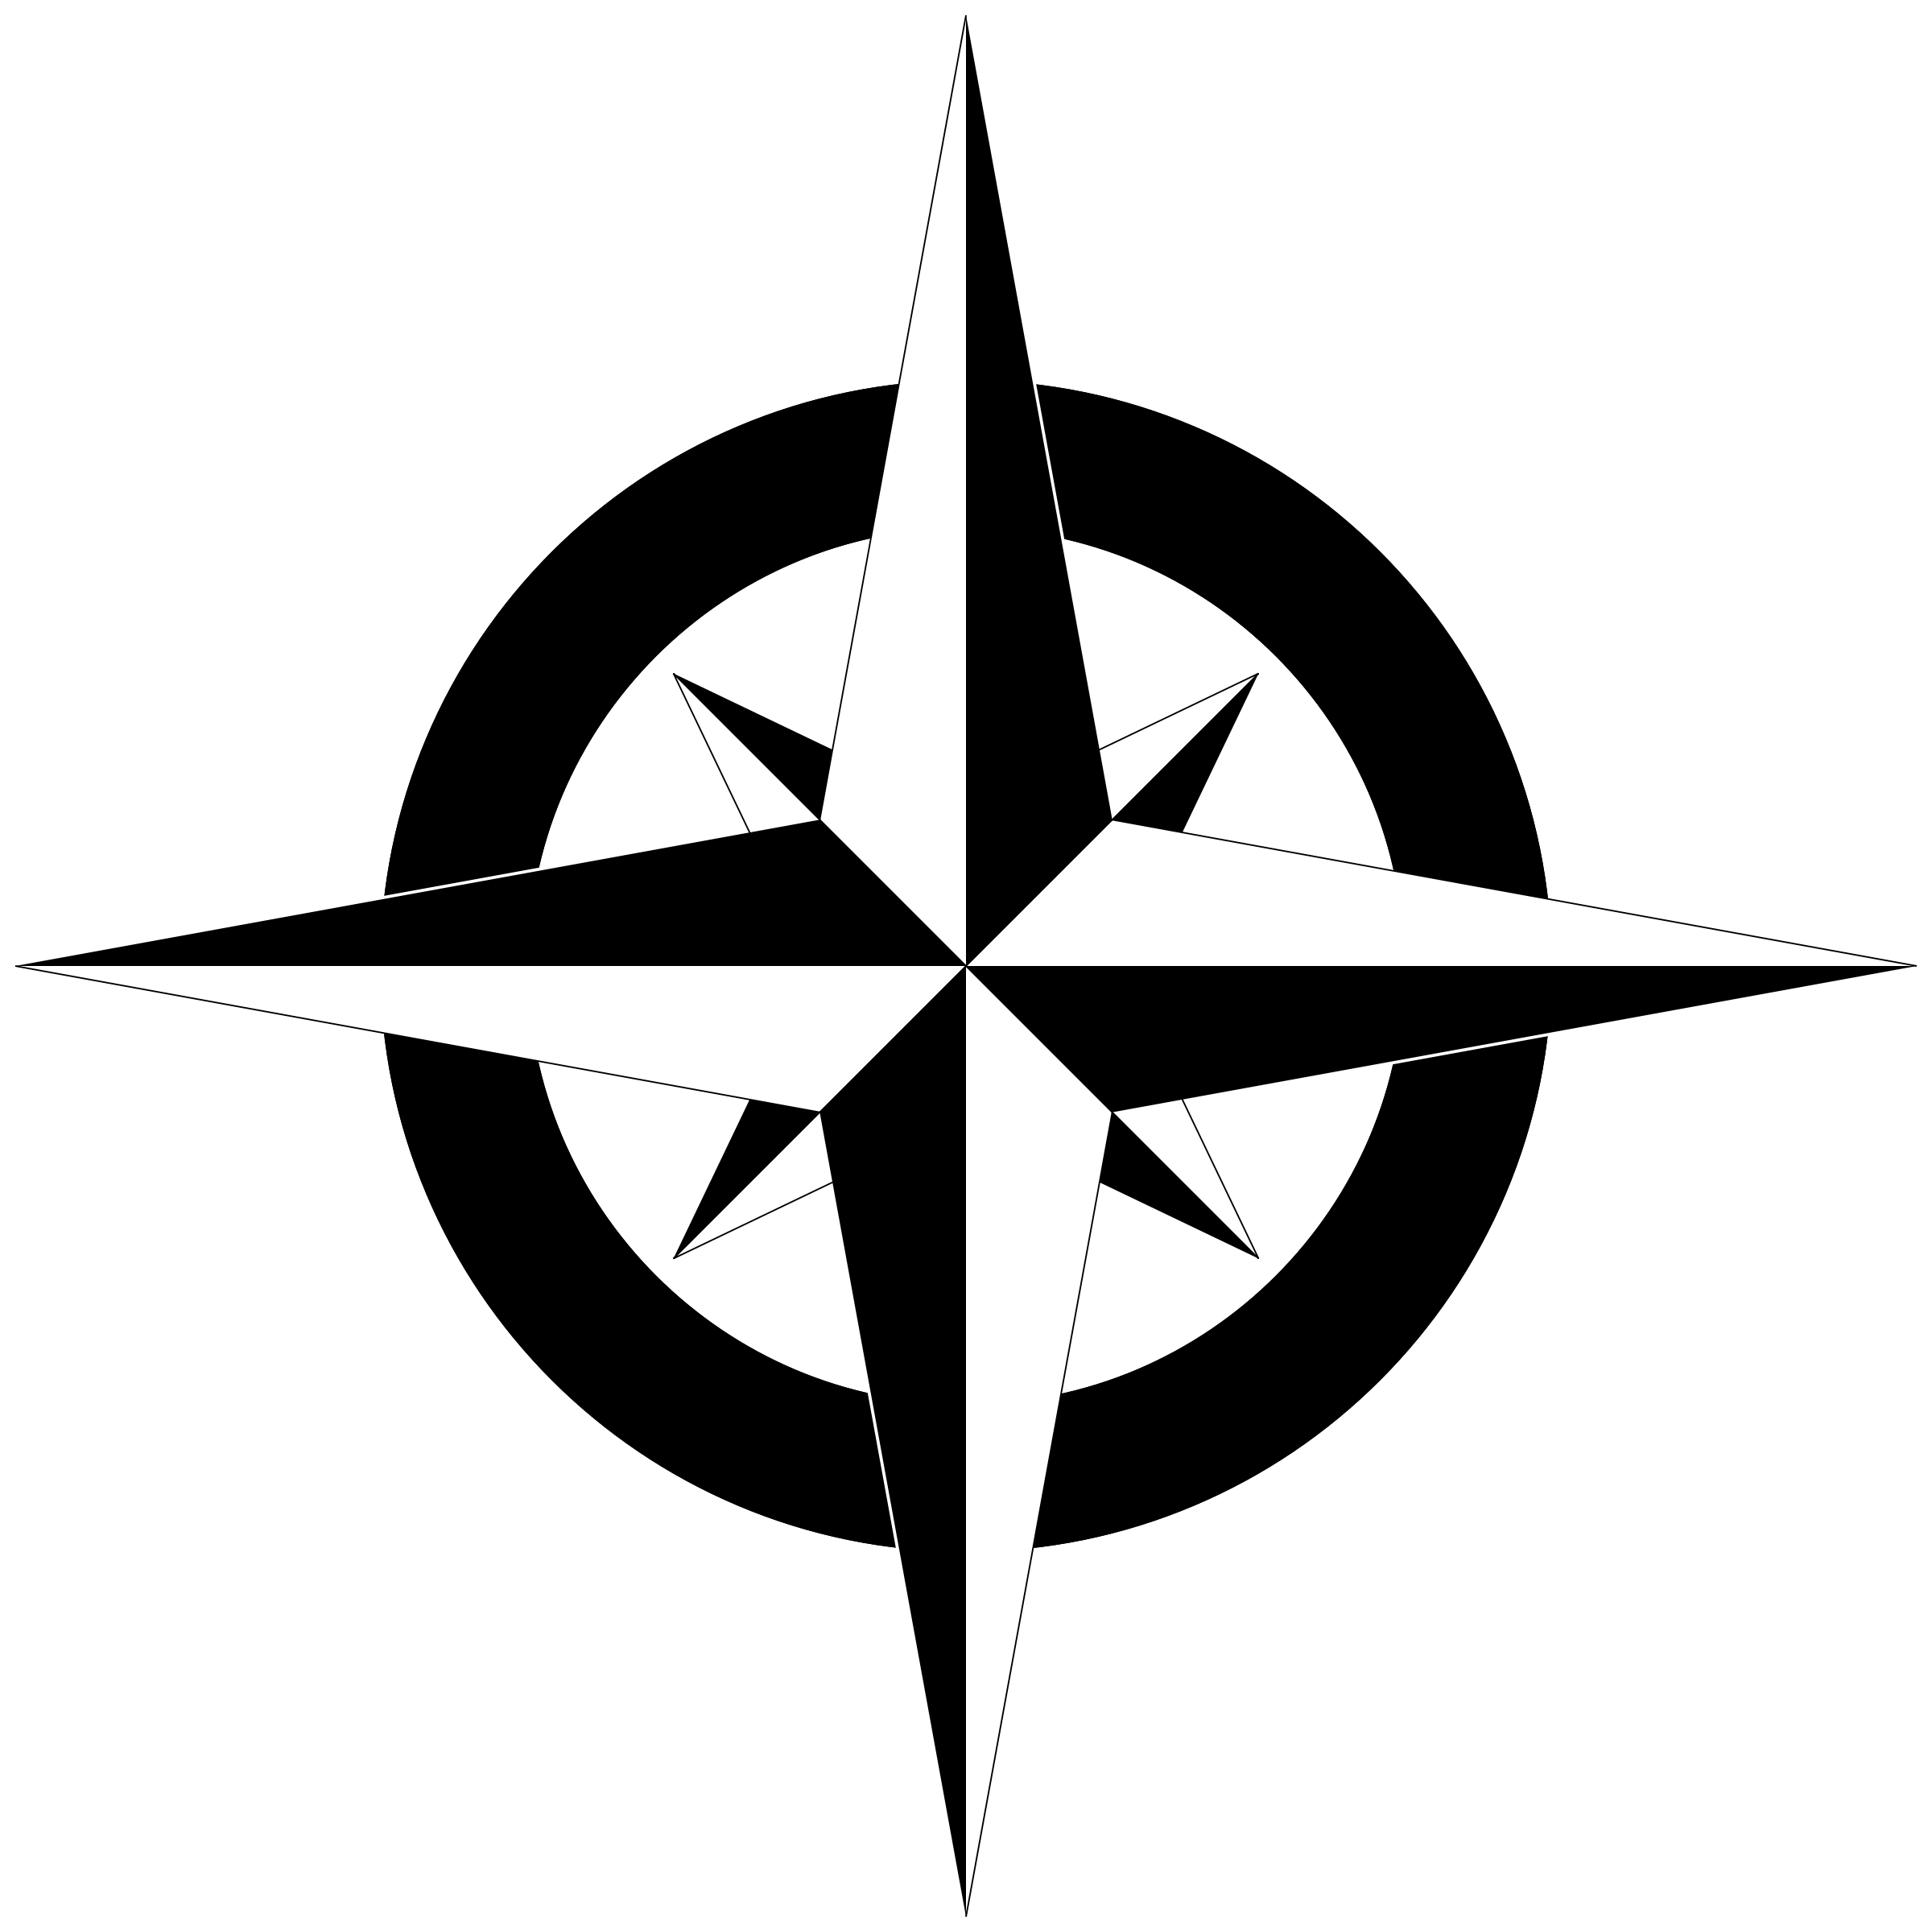 Free Simple Compass Rose, Download Free Clip Art, Free Clip.